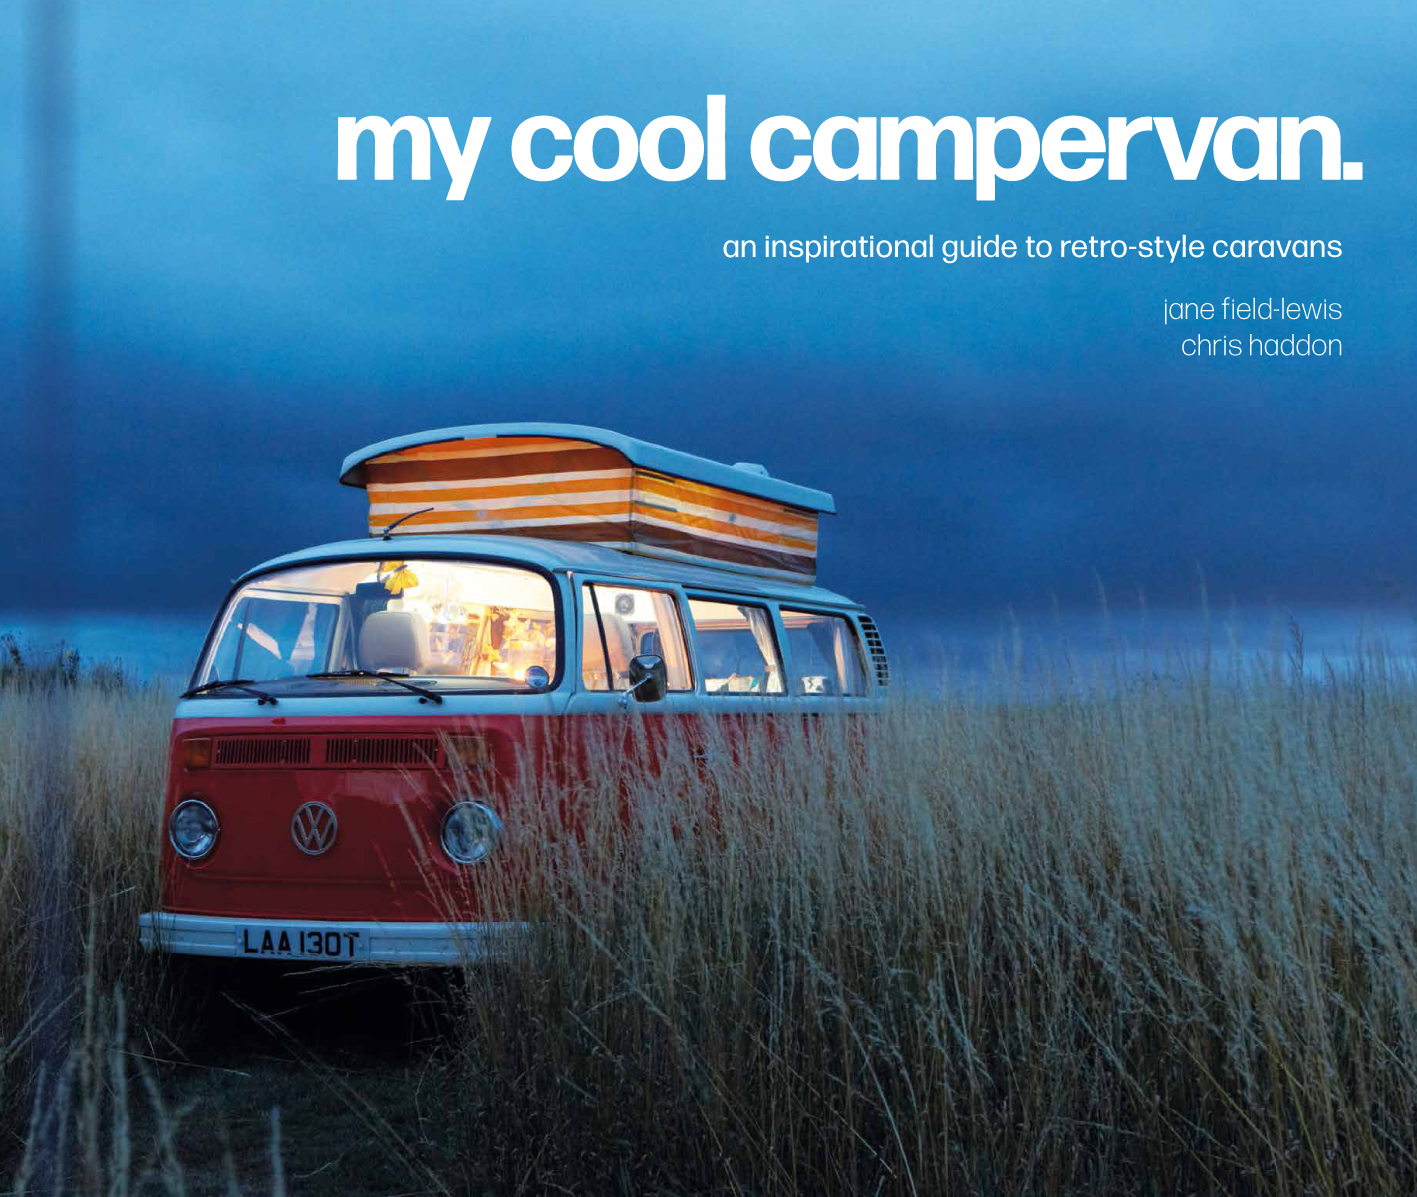 My Cool Campervan